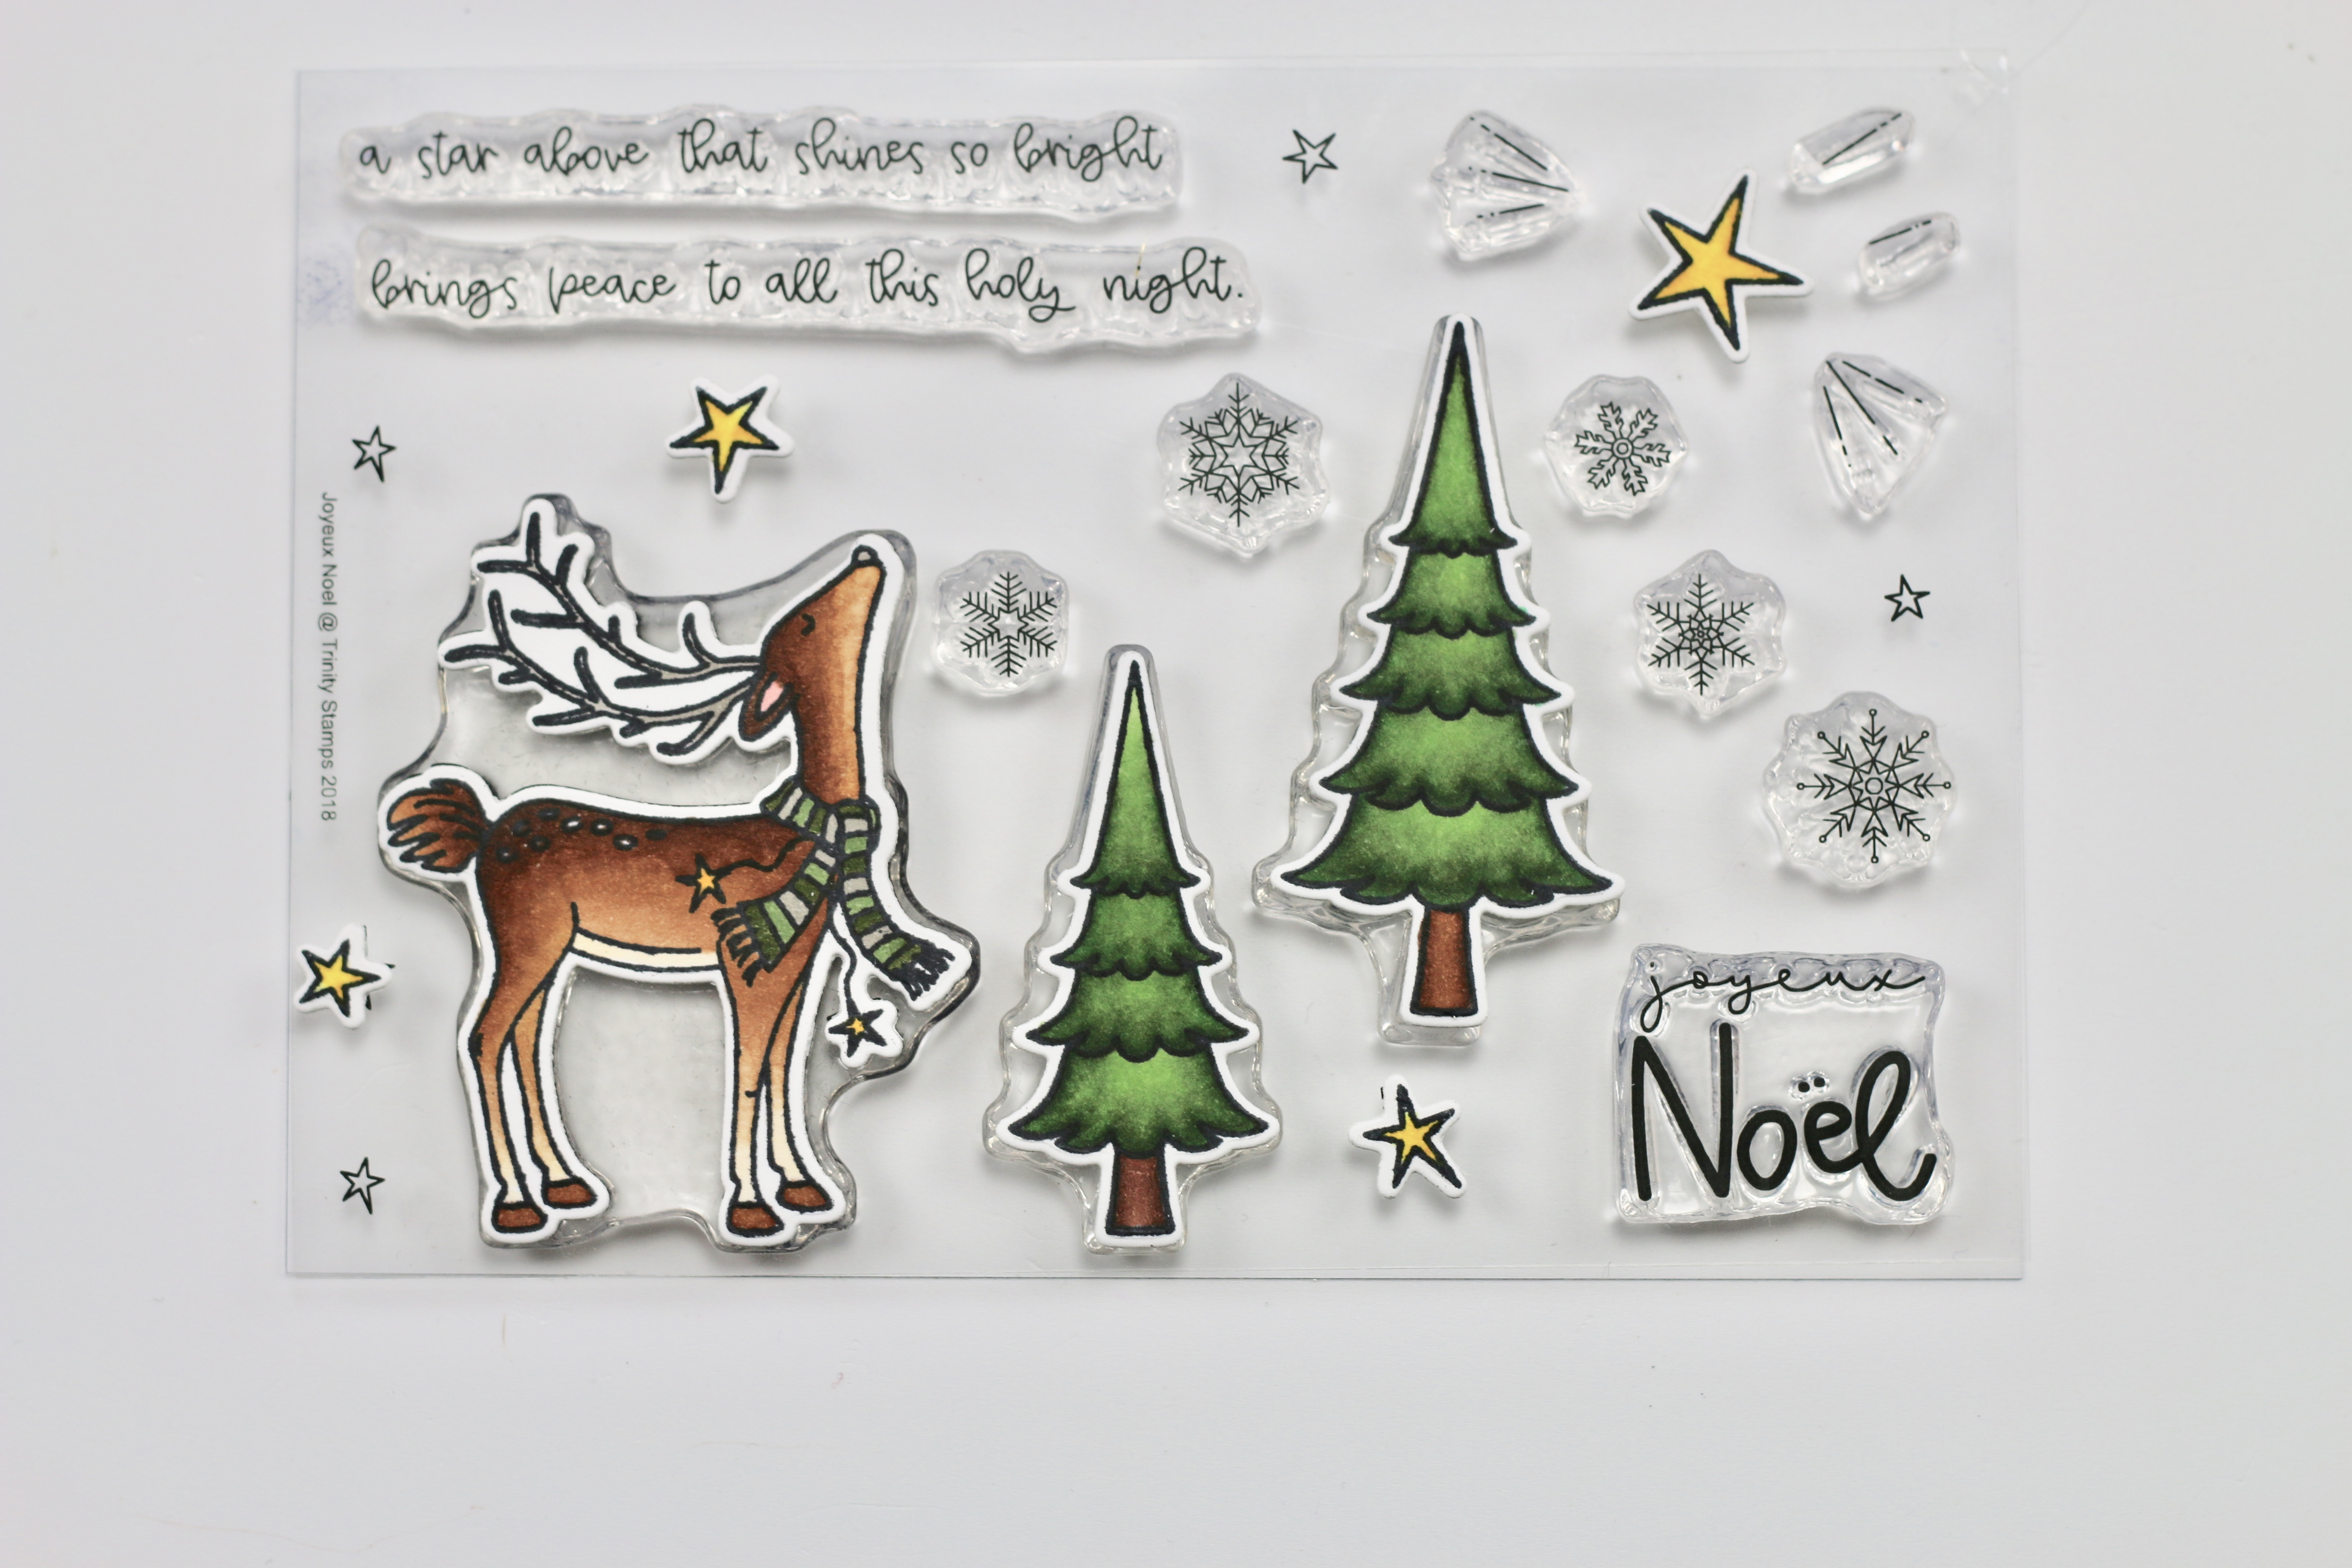 Christmas Card With Joyeux Noel Trinity Stamps